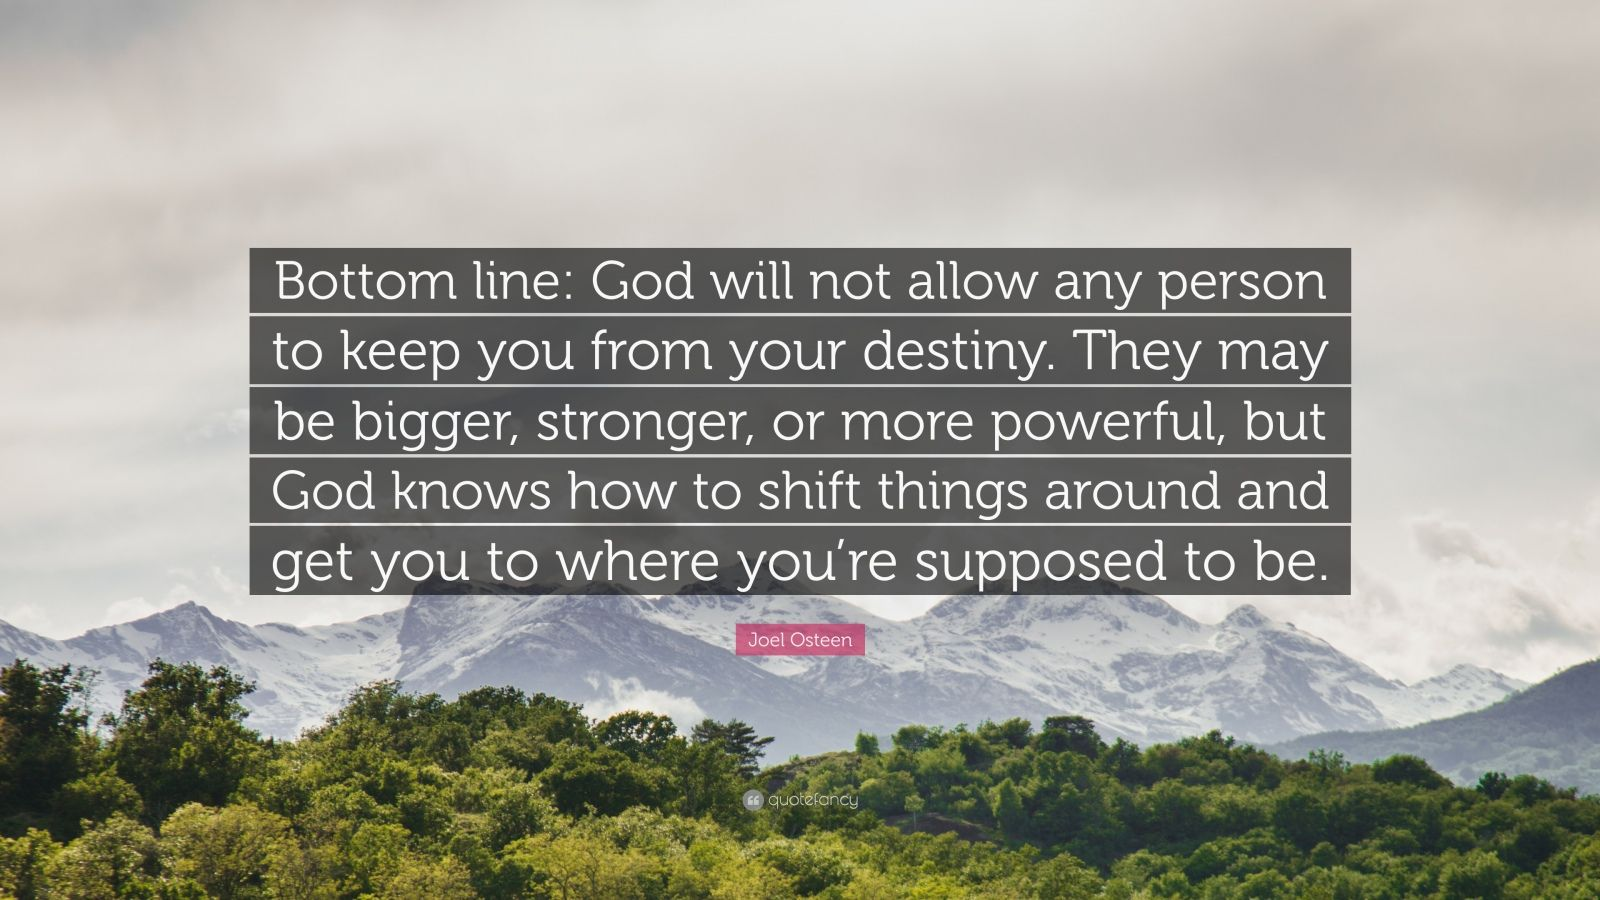 """Joel Osteen Quote: """"Bottom line: God will not allow any person to keep you from your destiny. They may be bigger, stronger, or more powerful, but God knows how to shift things around and get you to where you're supposed to be."""""""